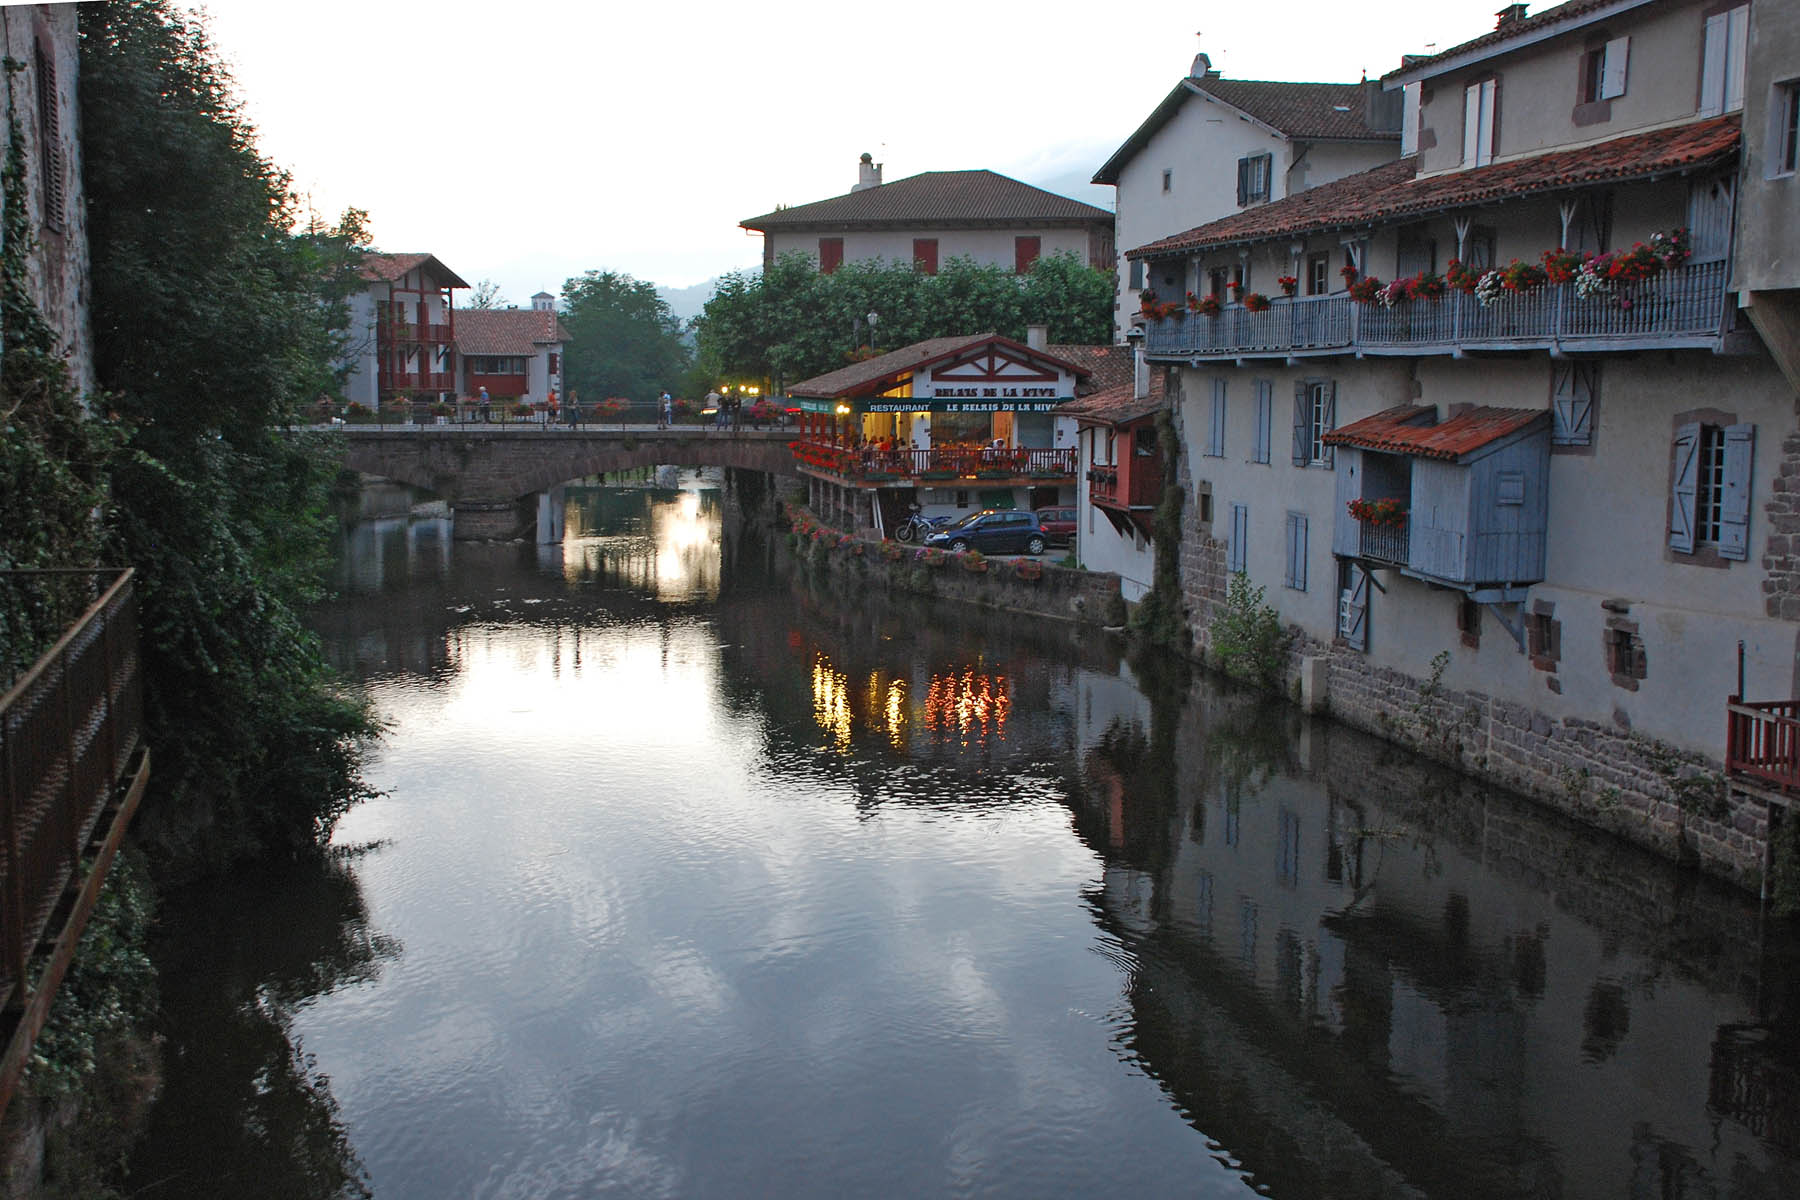 Saint jean pied de port france photo 694620 fanpop - Train from paris to st jean pied de port ...